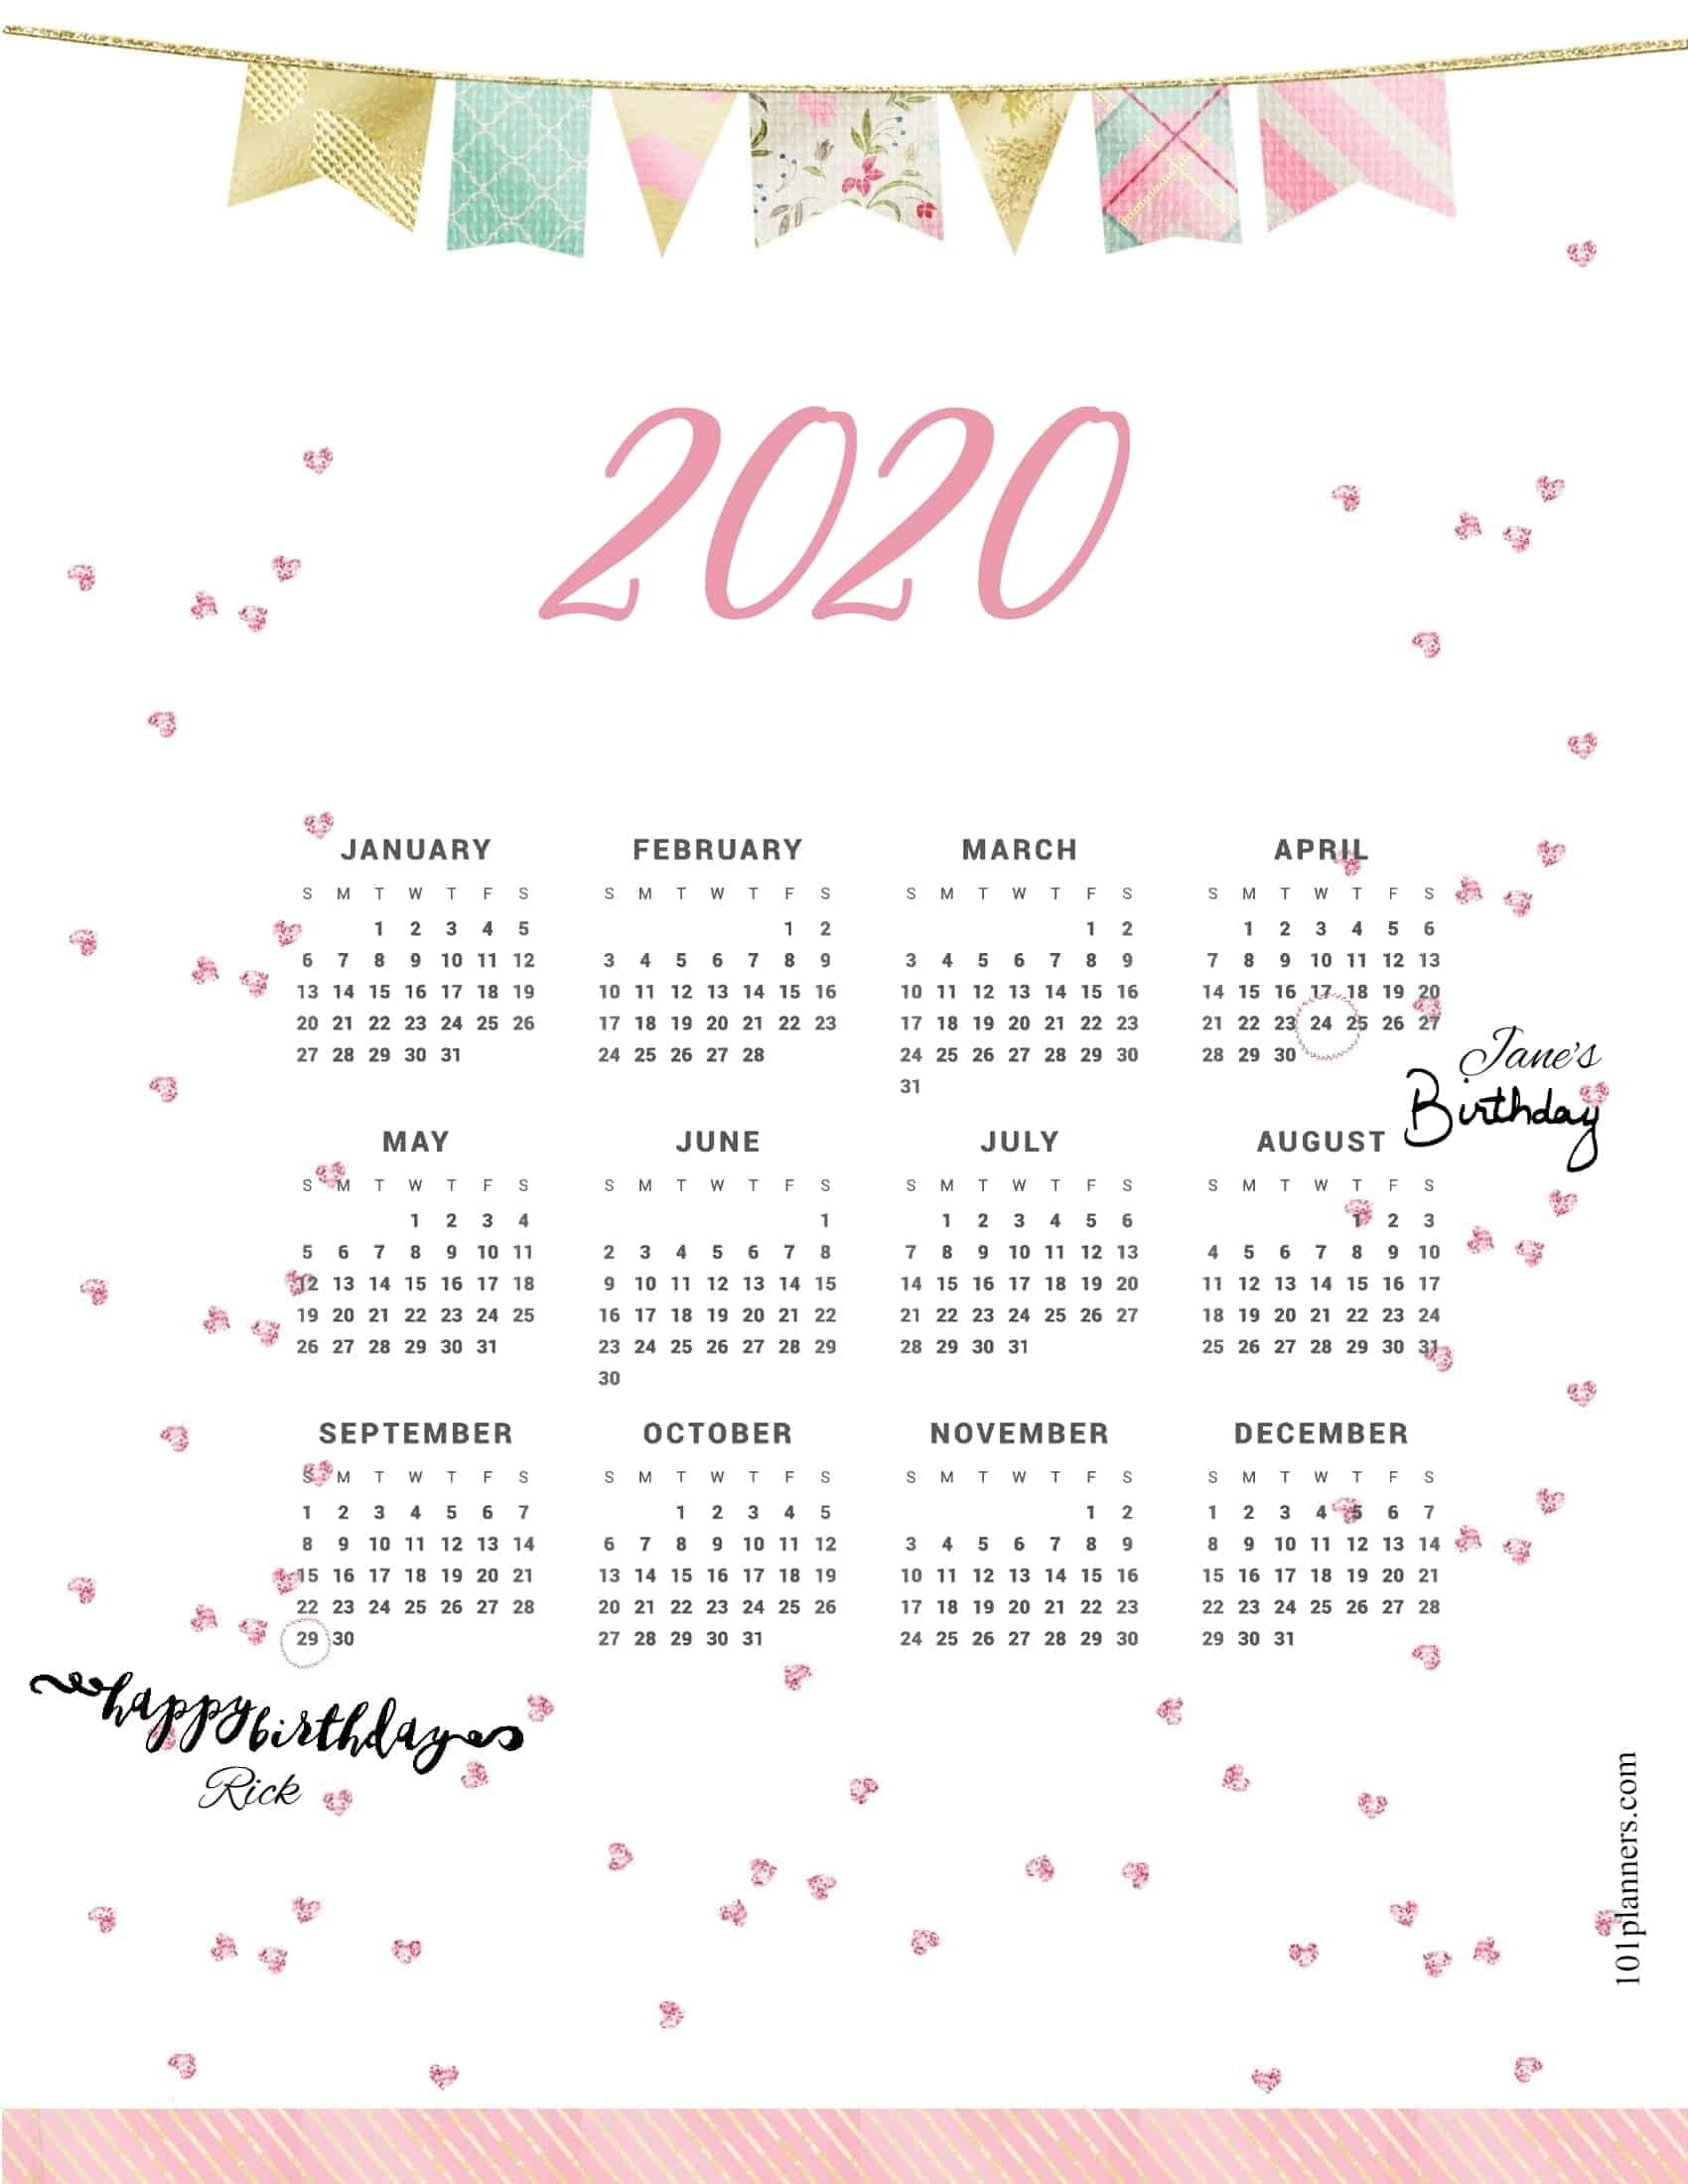 Free Printable 2020 Yearly Calendar At A Glance | 101 inside 2020 Free Printable Calendars Without Downloading At A Glance